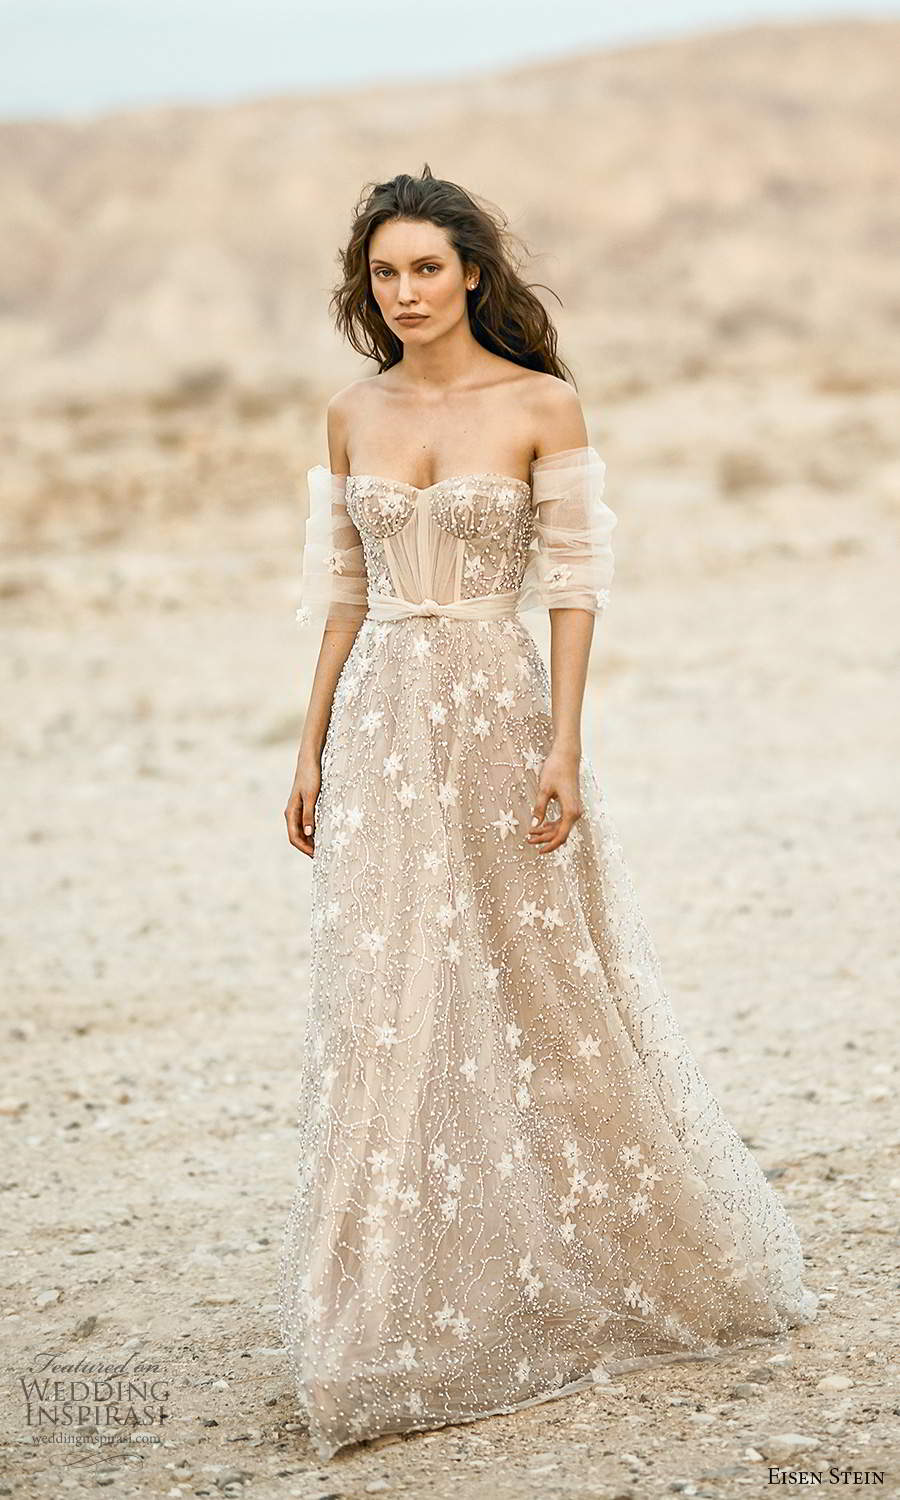 eisen stein fall 2021 bridal detached half sleeves strapless semi sweetheart neckline fully embellished a line ball gown wedding dress sweep train (9) mv